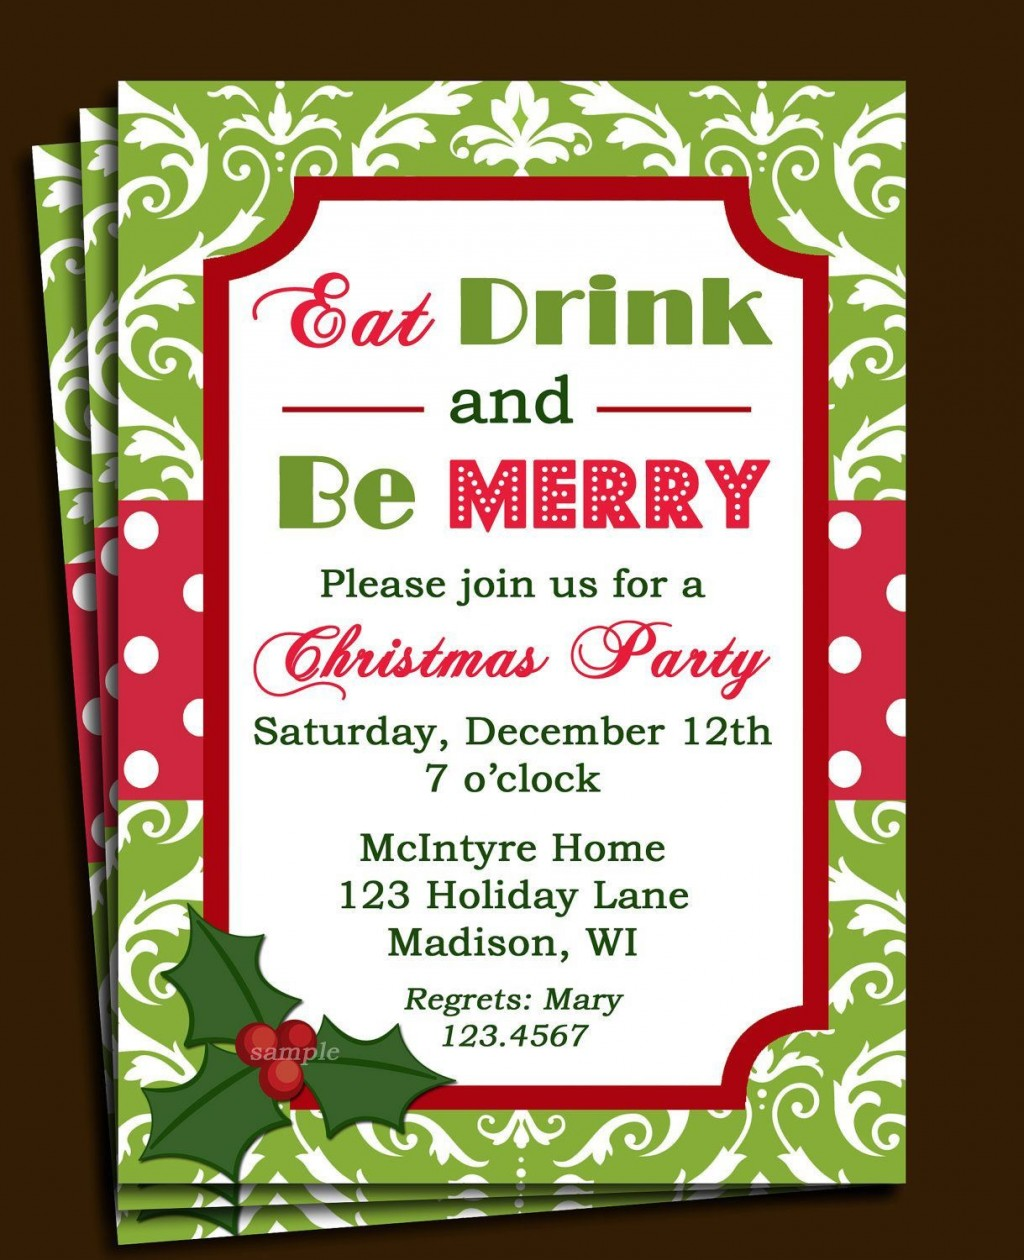 010 Sensational Holiday Party Invite Template Word Photo  Cocktail Invitation Wording Sample Microsoft ChristmaLarge